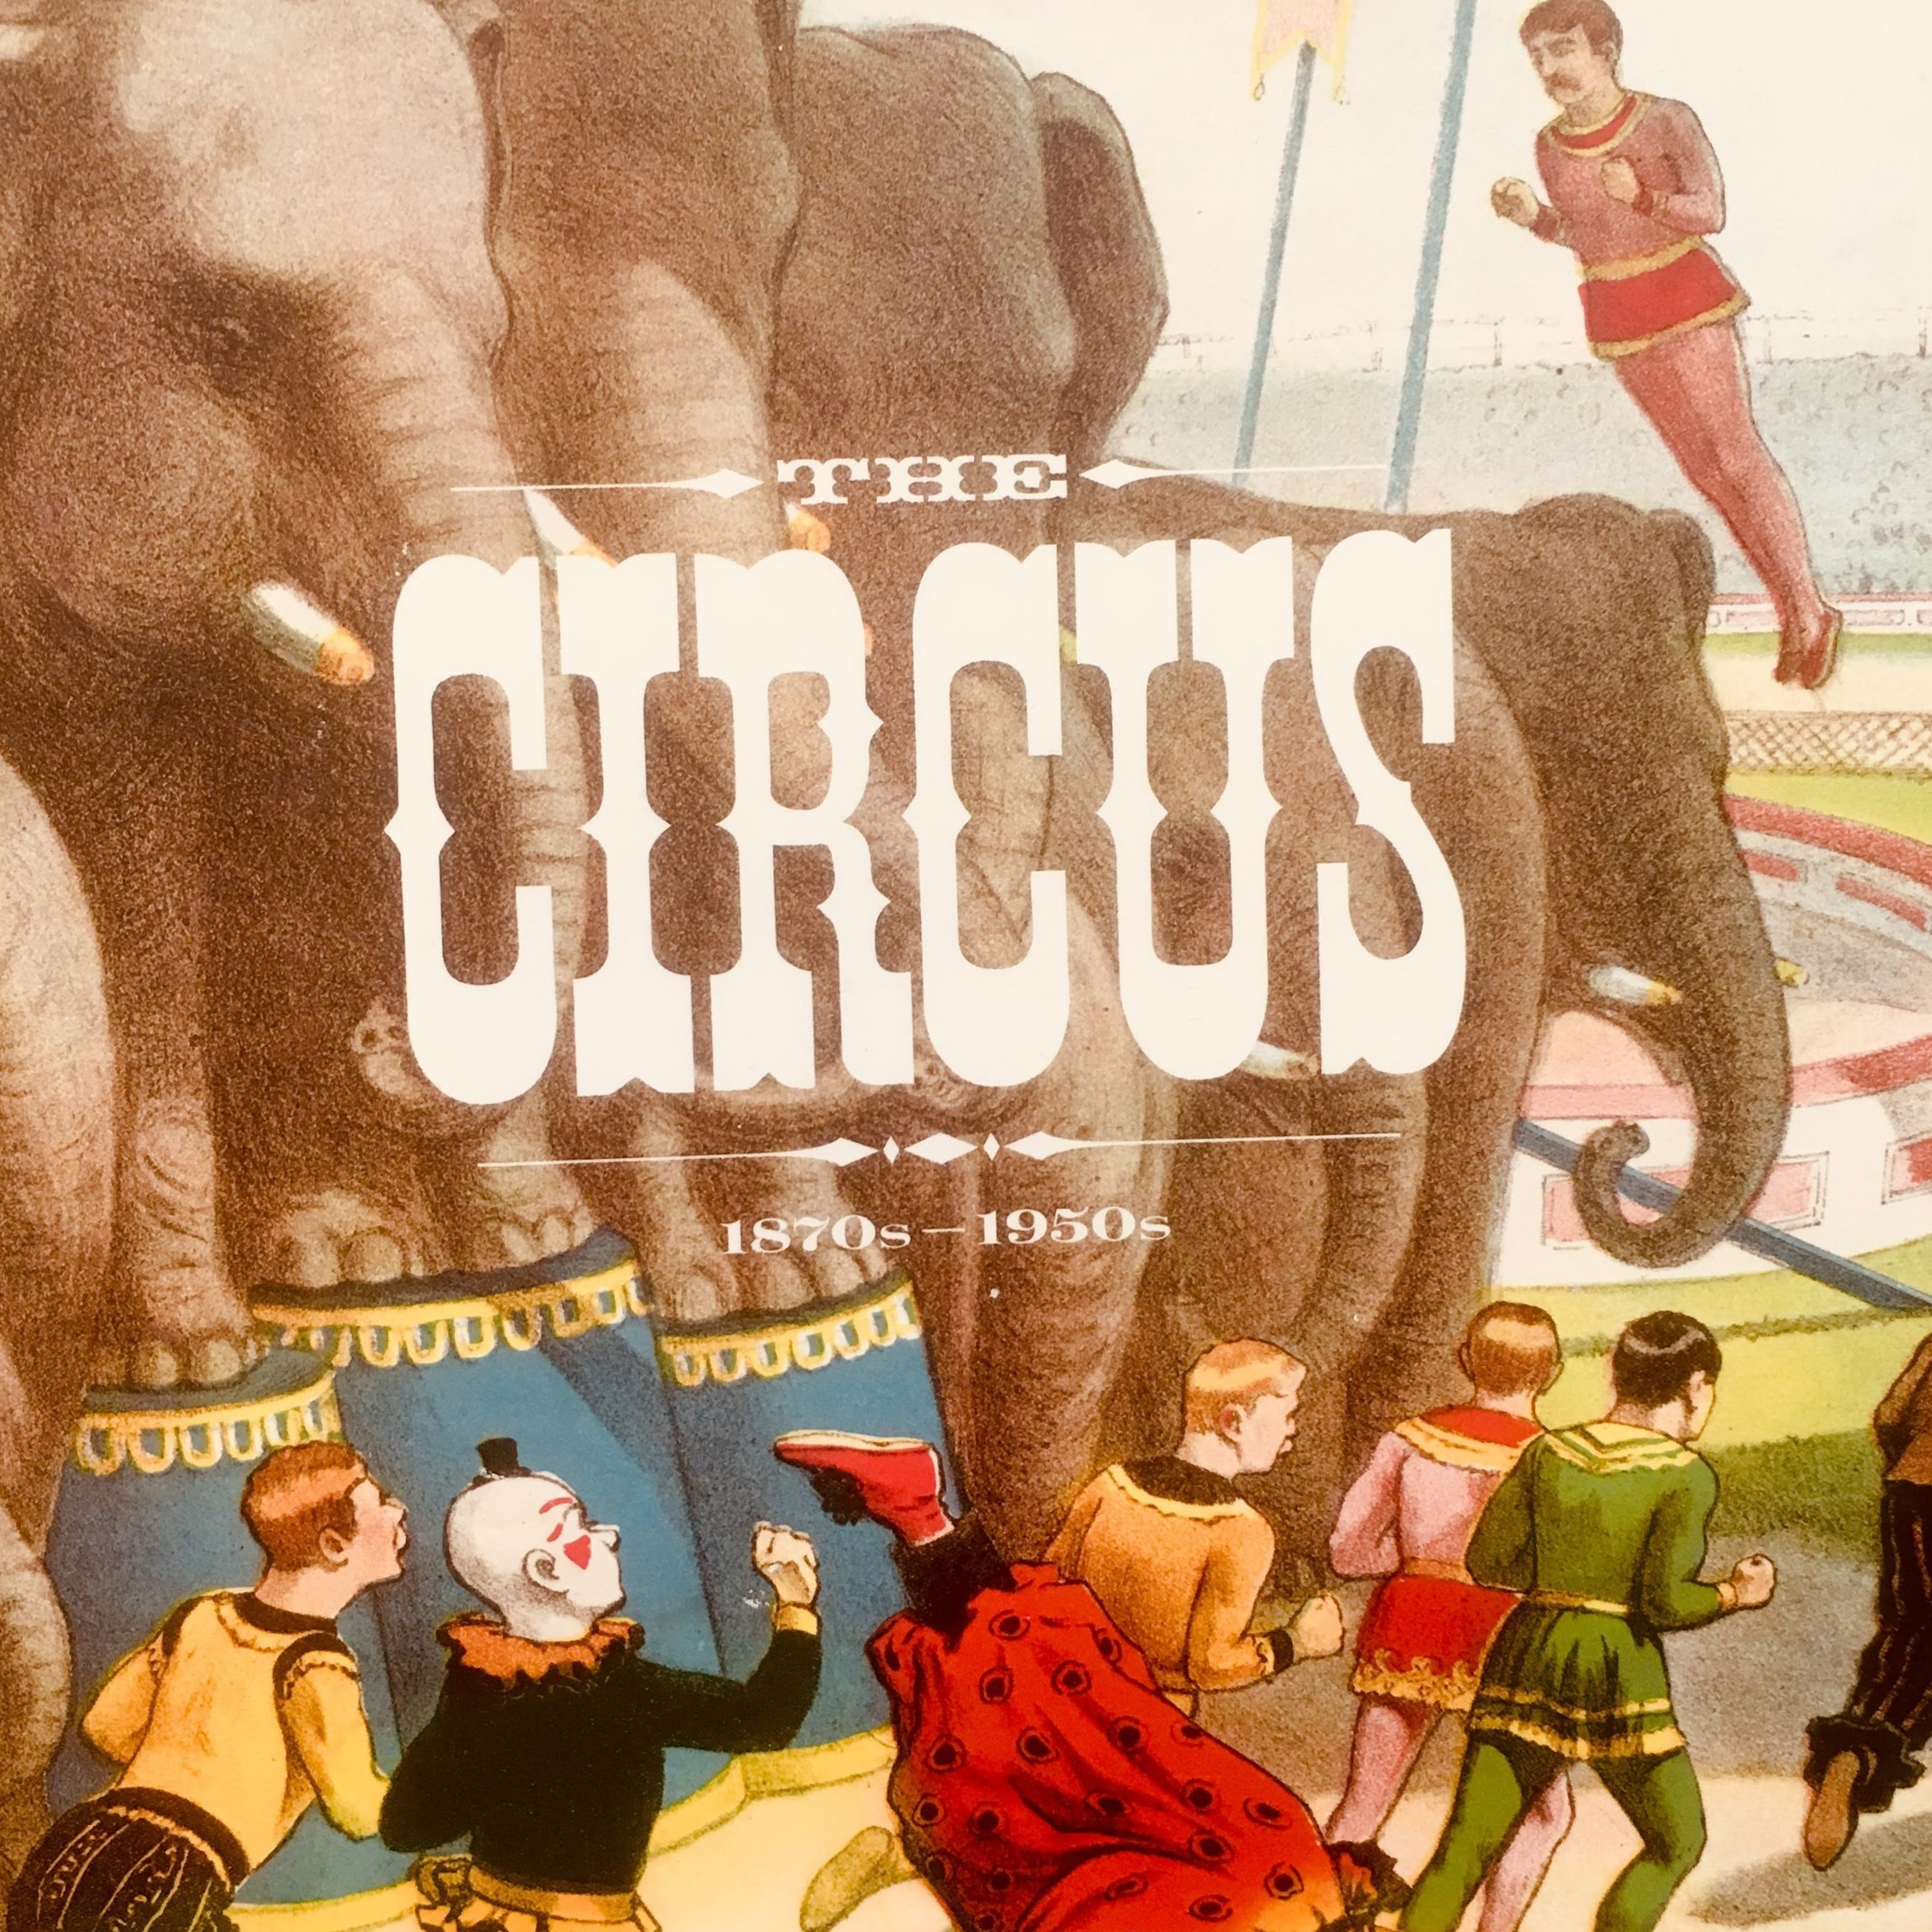 """cover art from Noel Daniel's book """"The Circus 1870's - 1950's"""""""